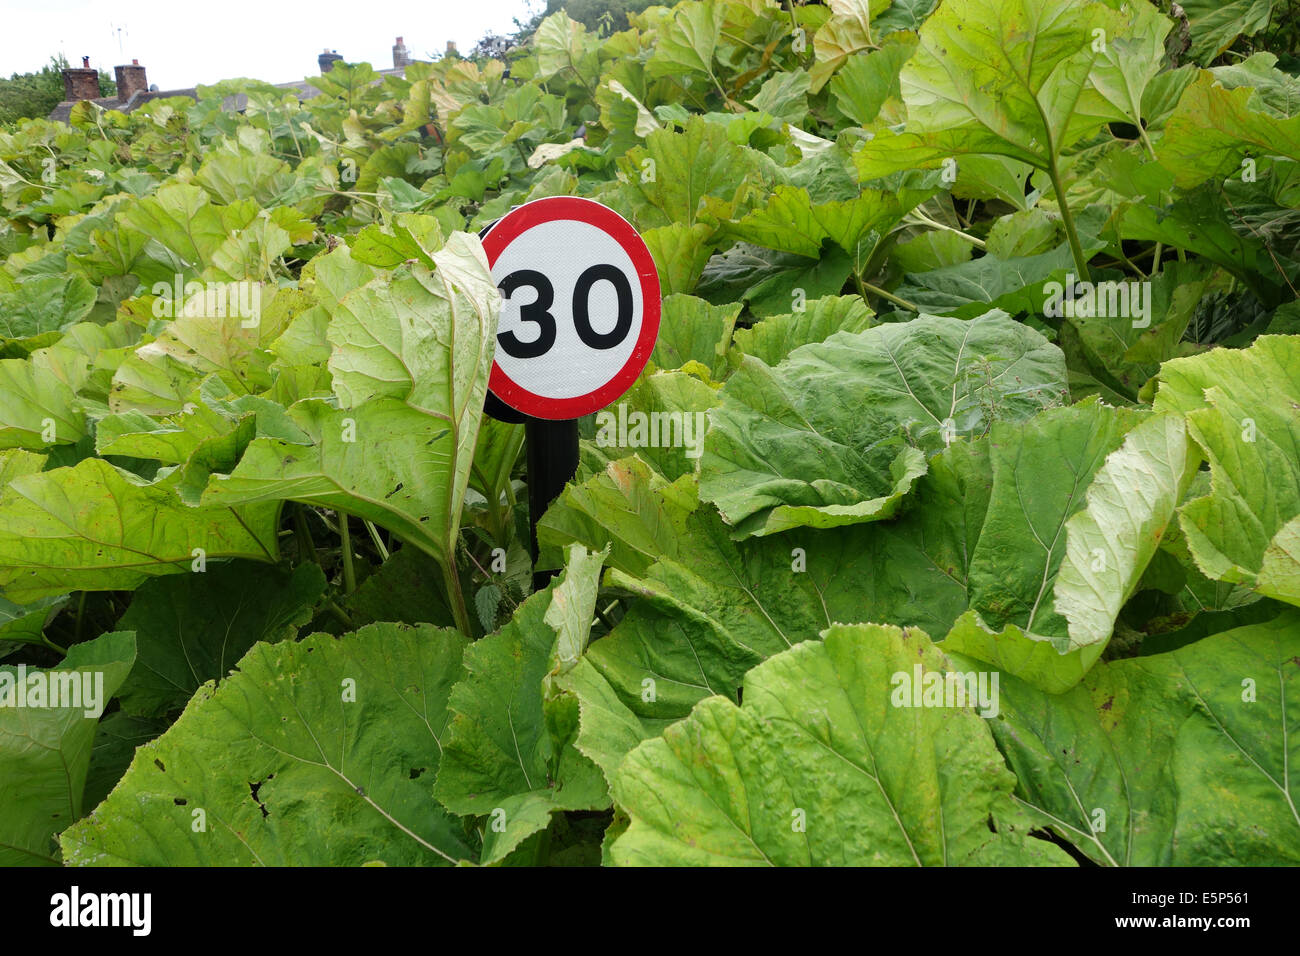 Road traffic speed limit sign hidden badly maintained 30mph uk - Stock Image